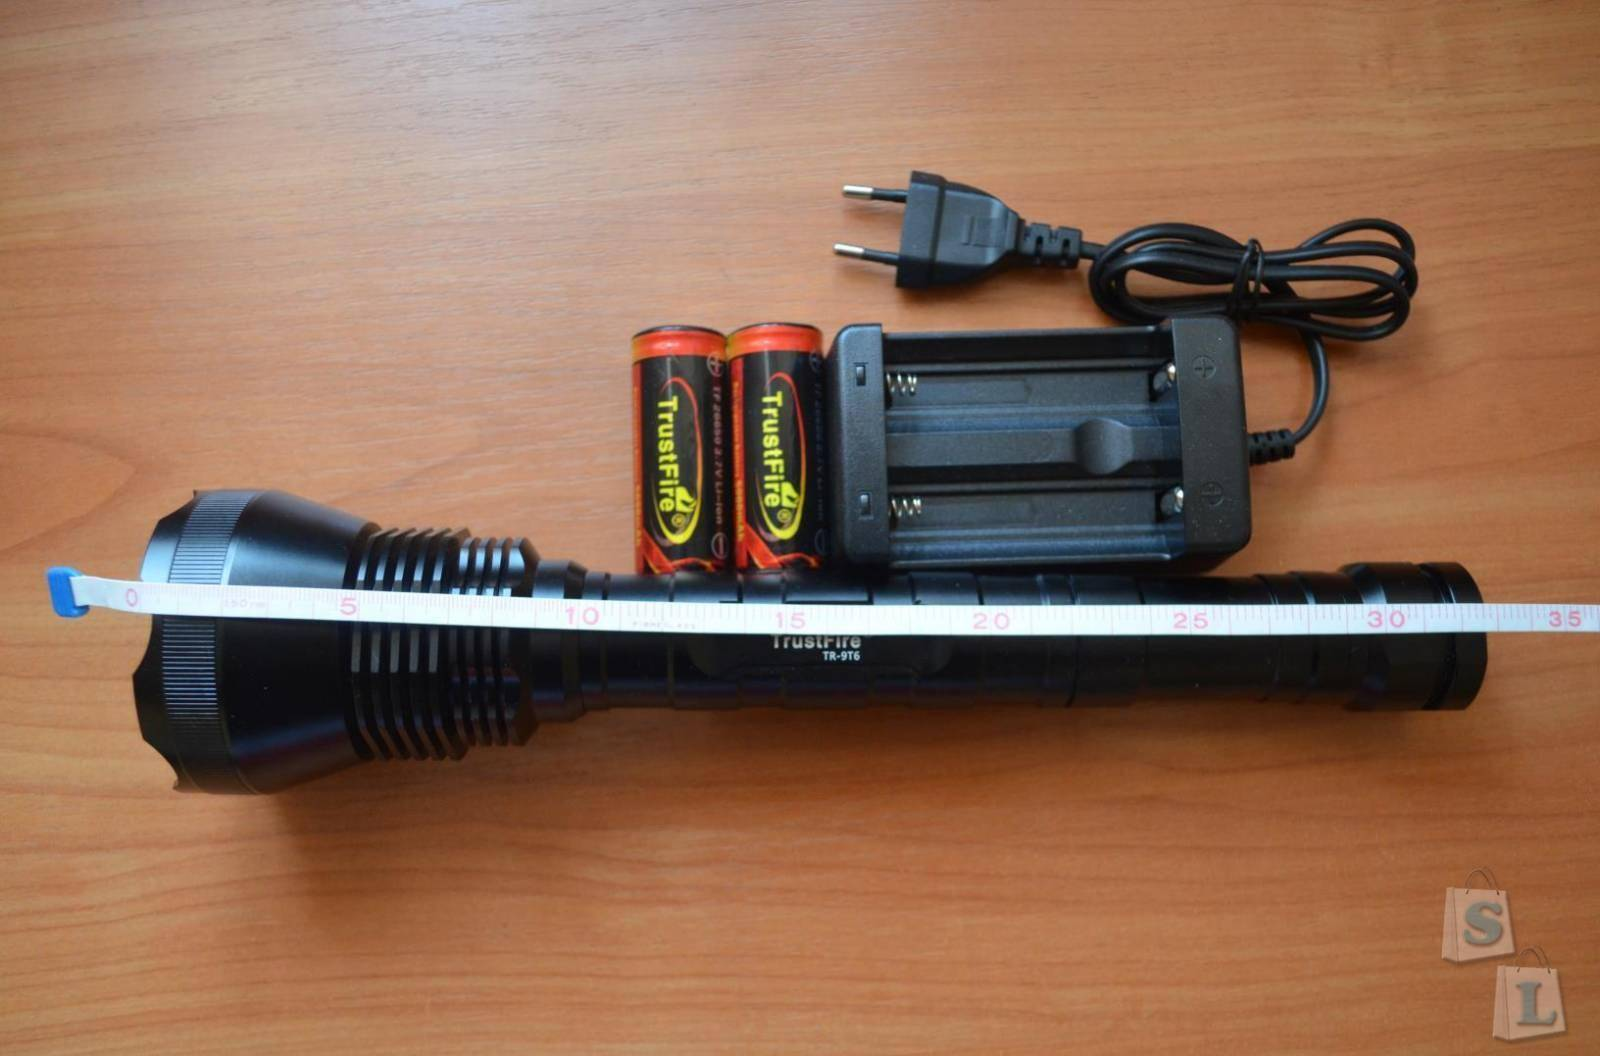 TomTop: LED фонарь TrustFire Lumen 11000